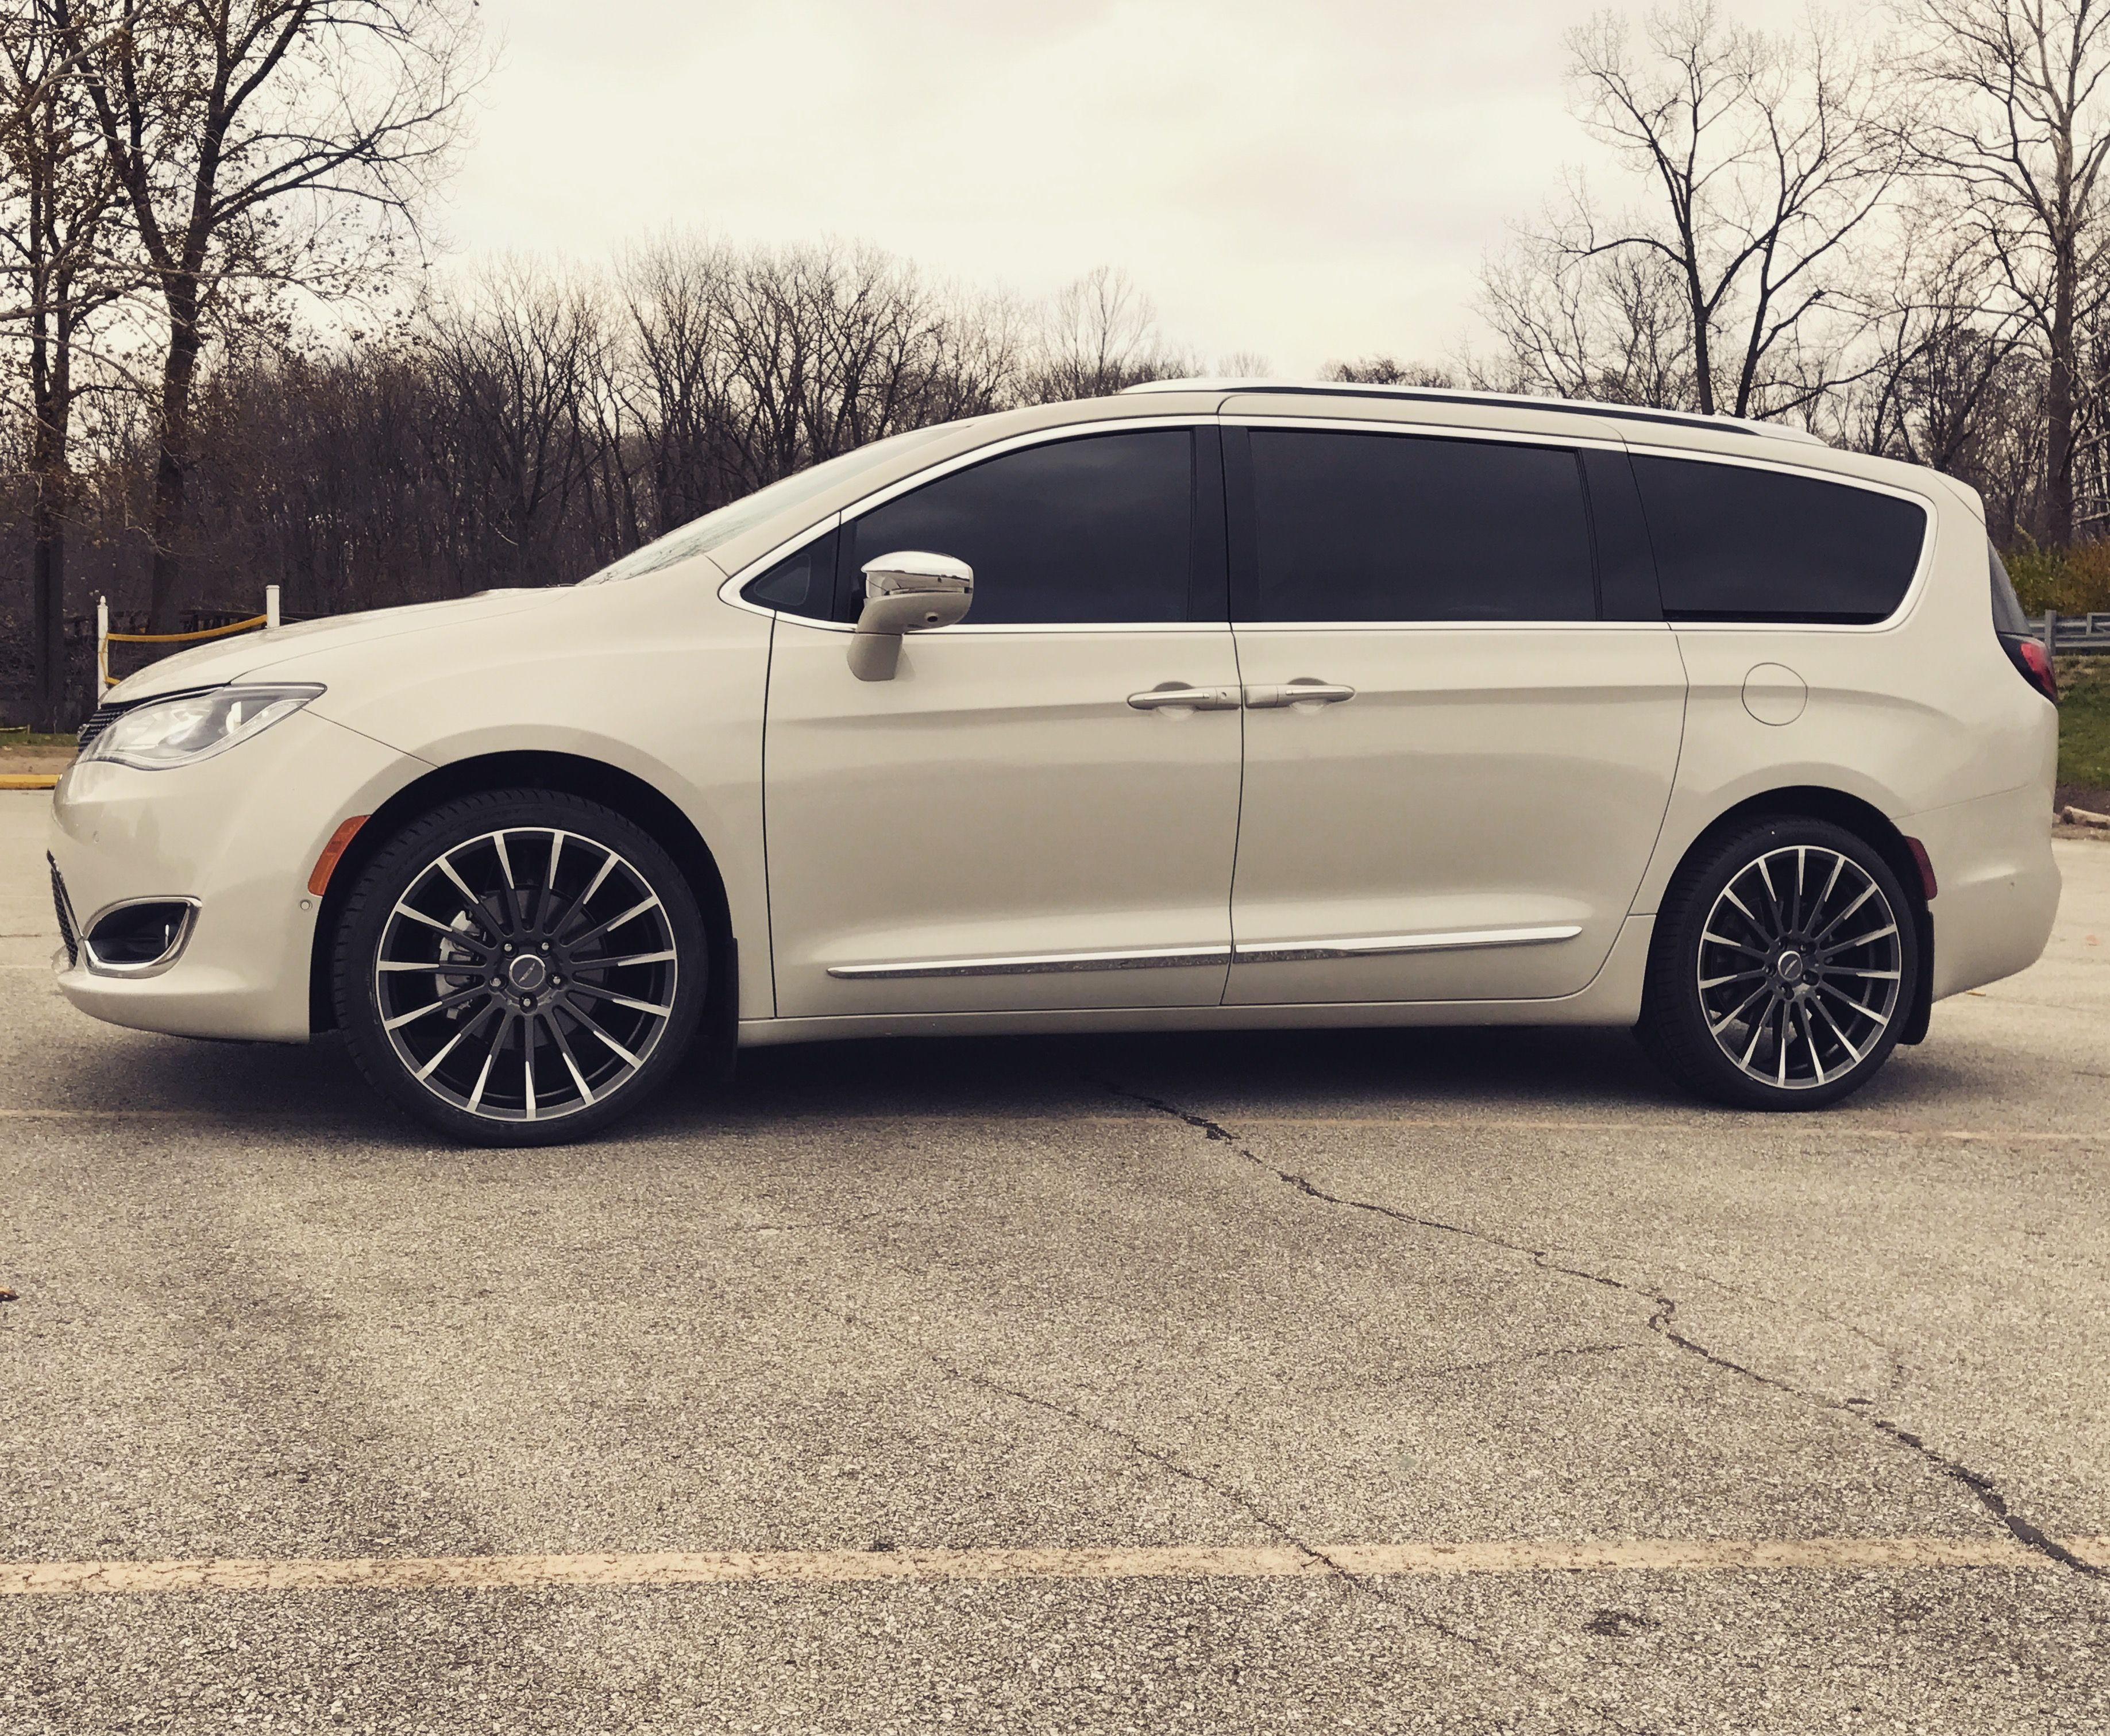 2017 Chrysler Pacifica Limited On 22 Ace Alloy Devotion